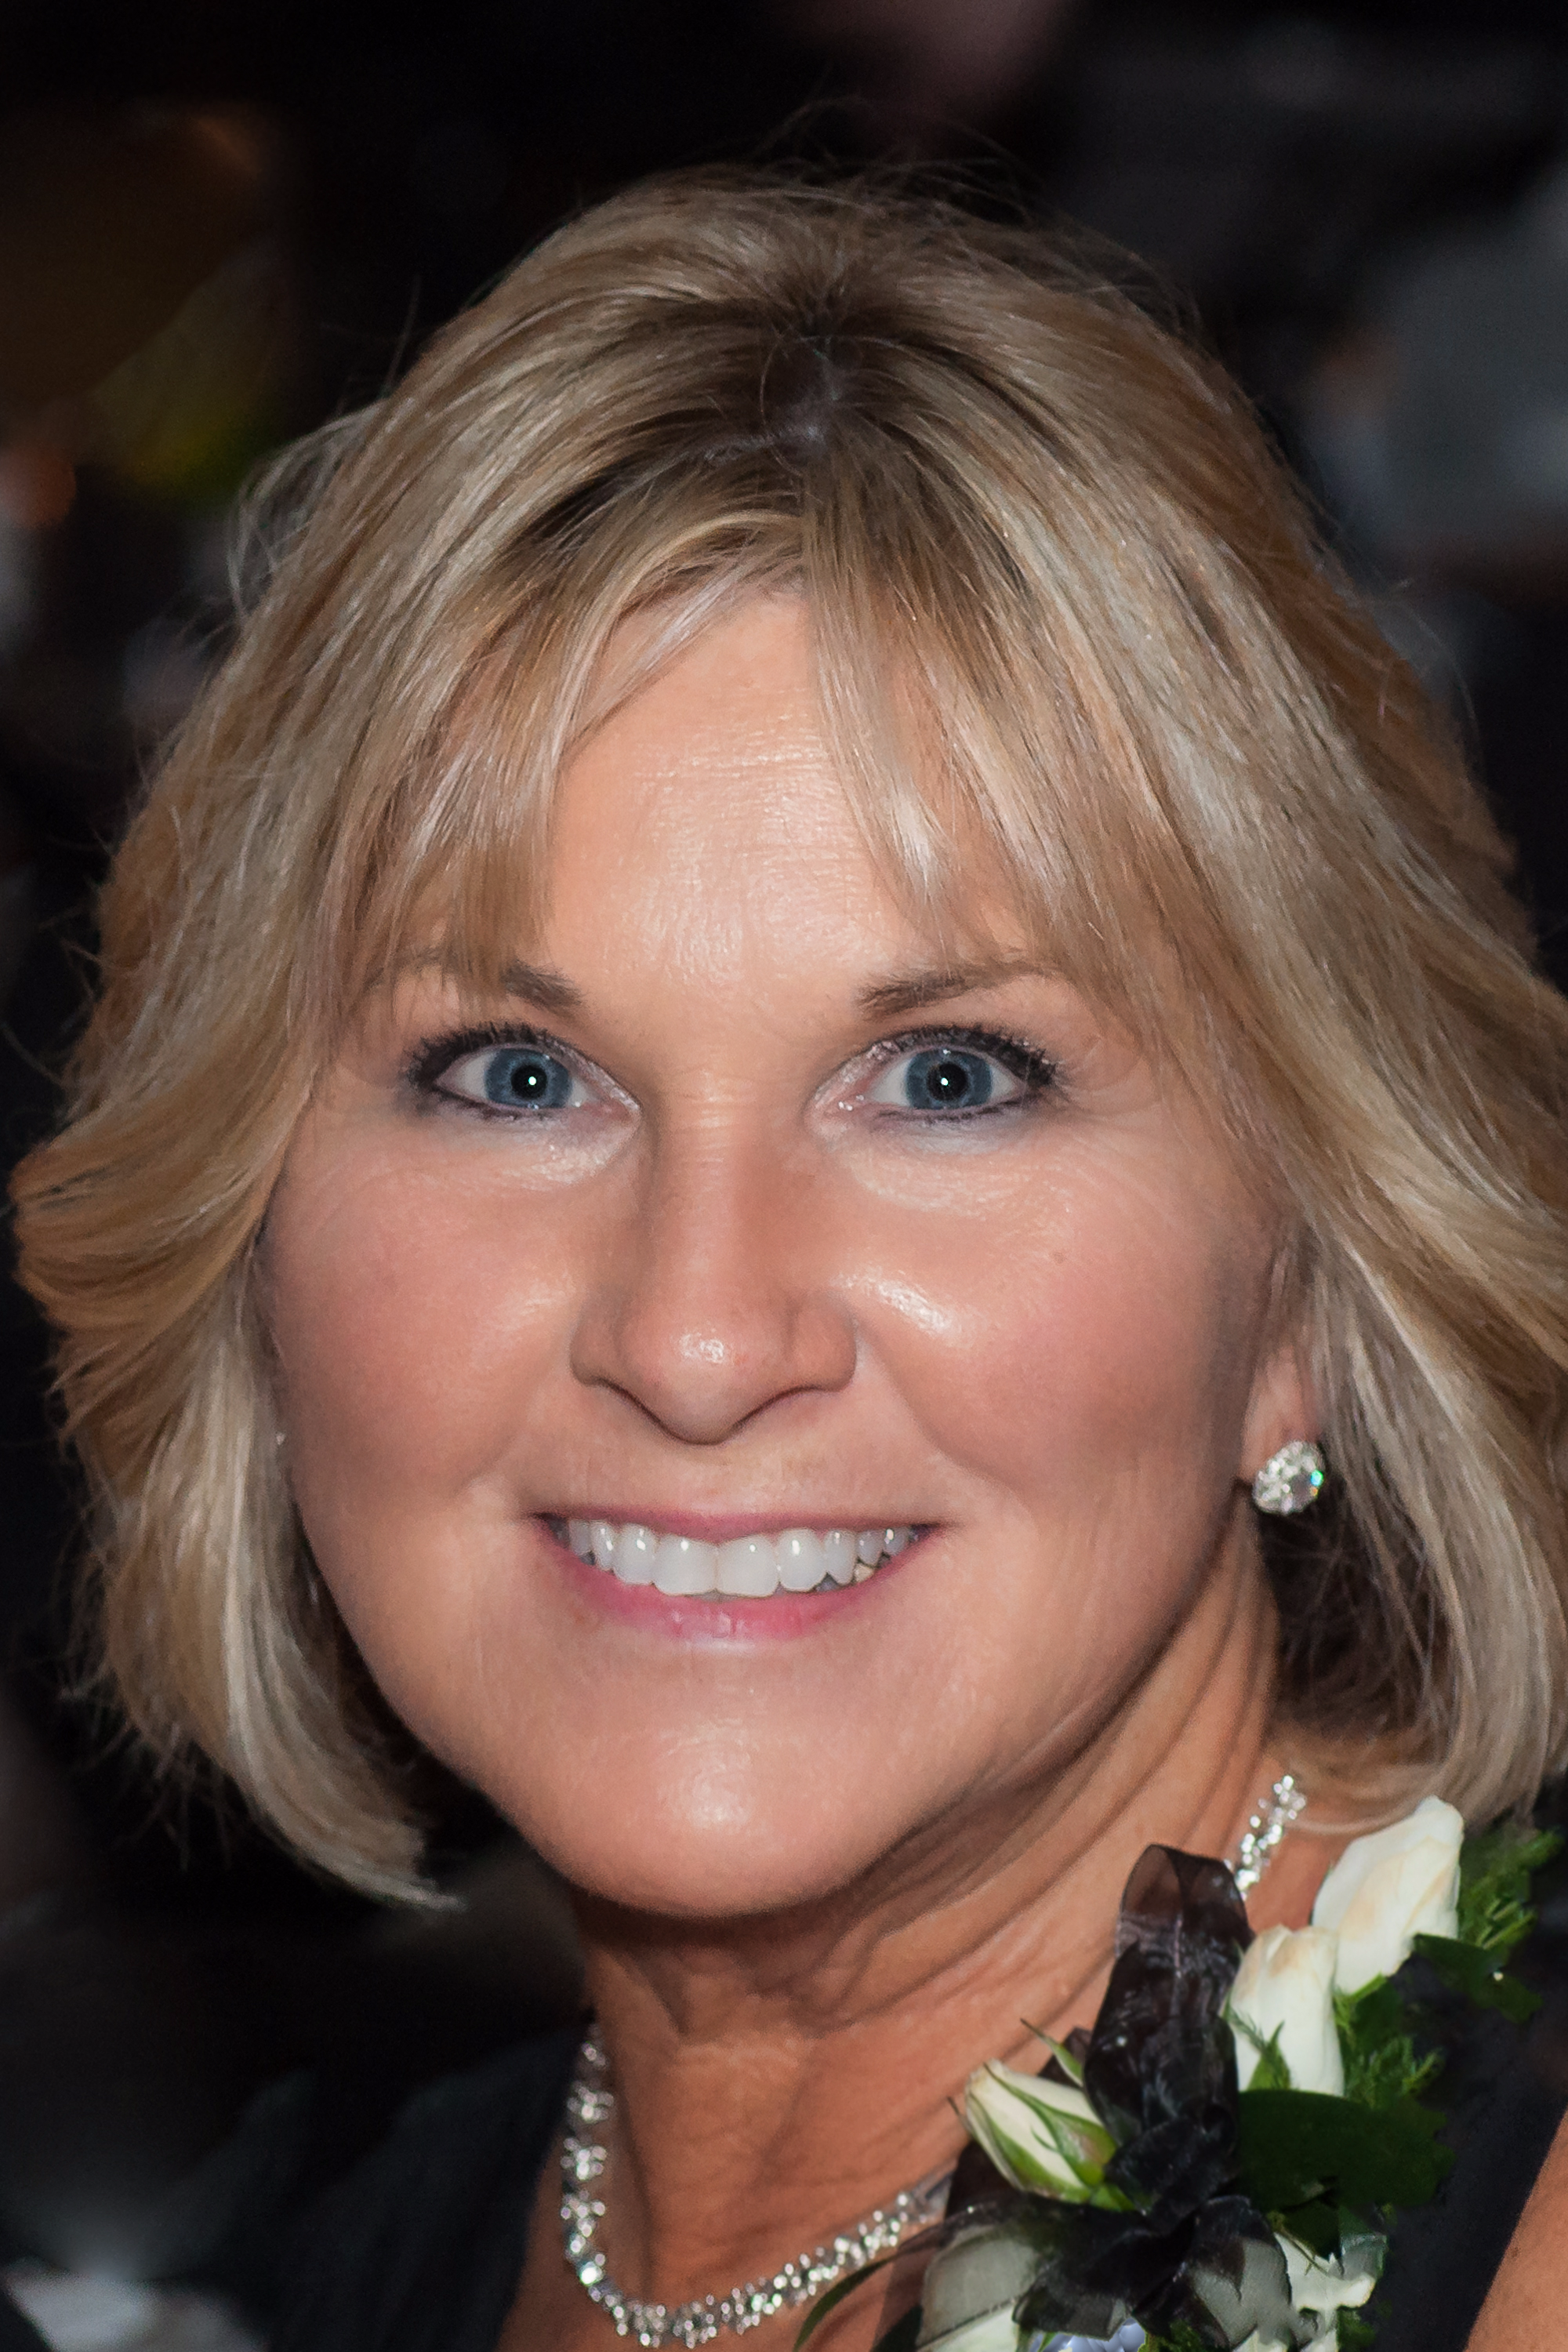 Judy Faulkner, Real Estate Agent - Columbus, OH - Coldwell